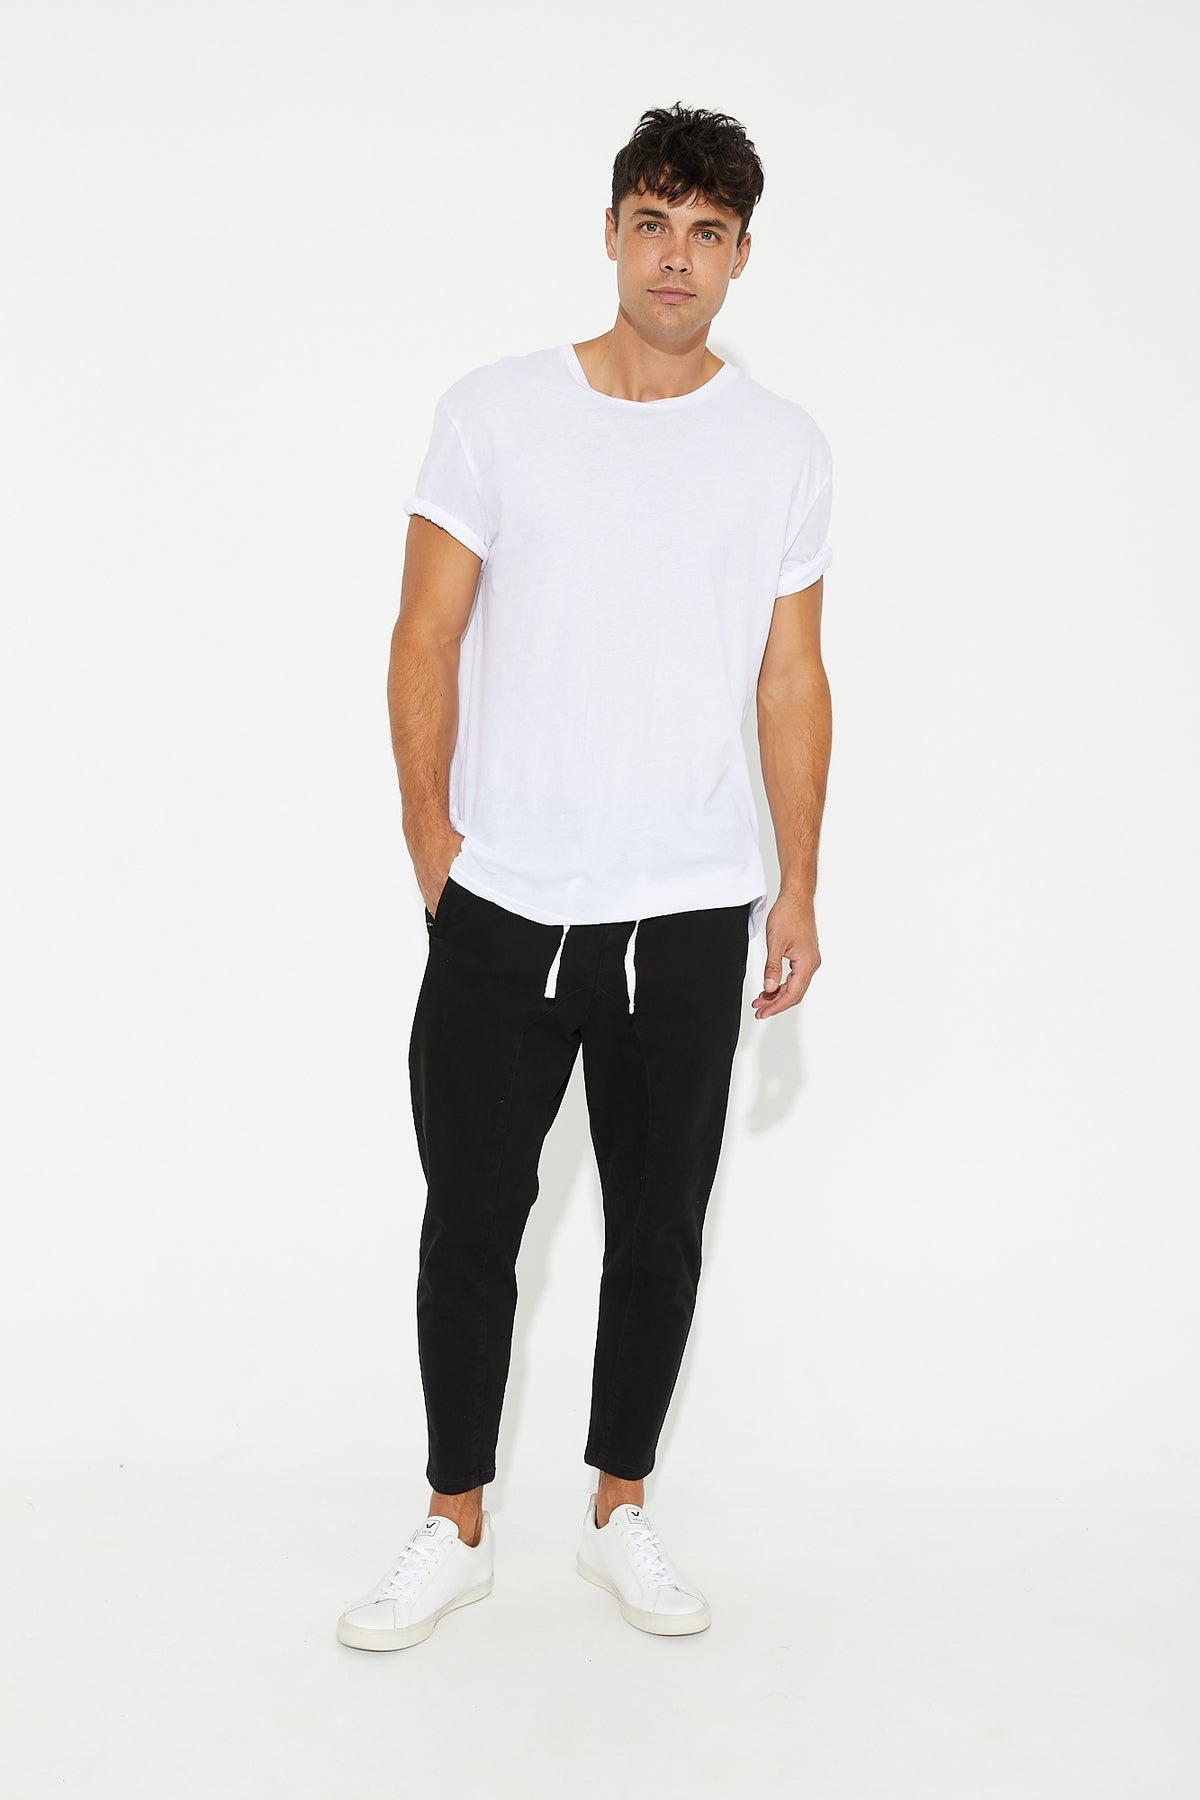 Pierce Drop Crotch Pant Black